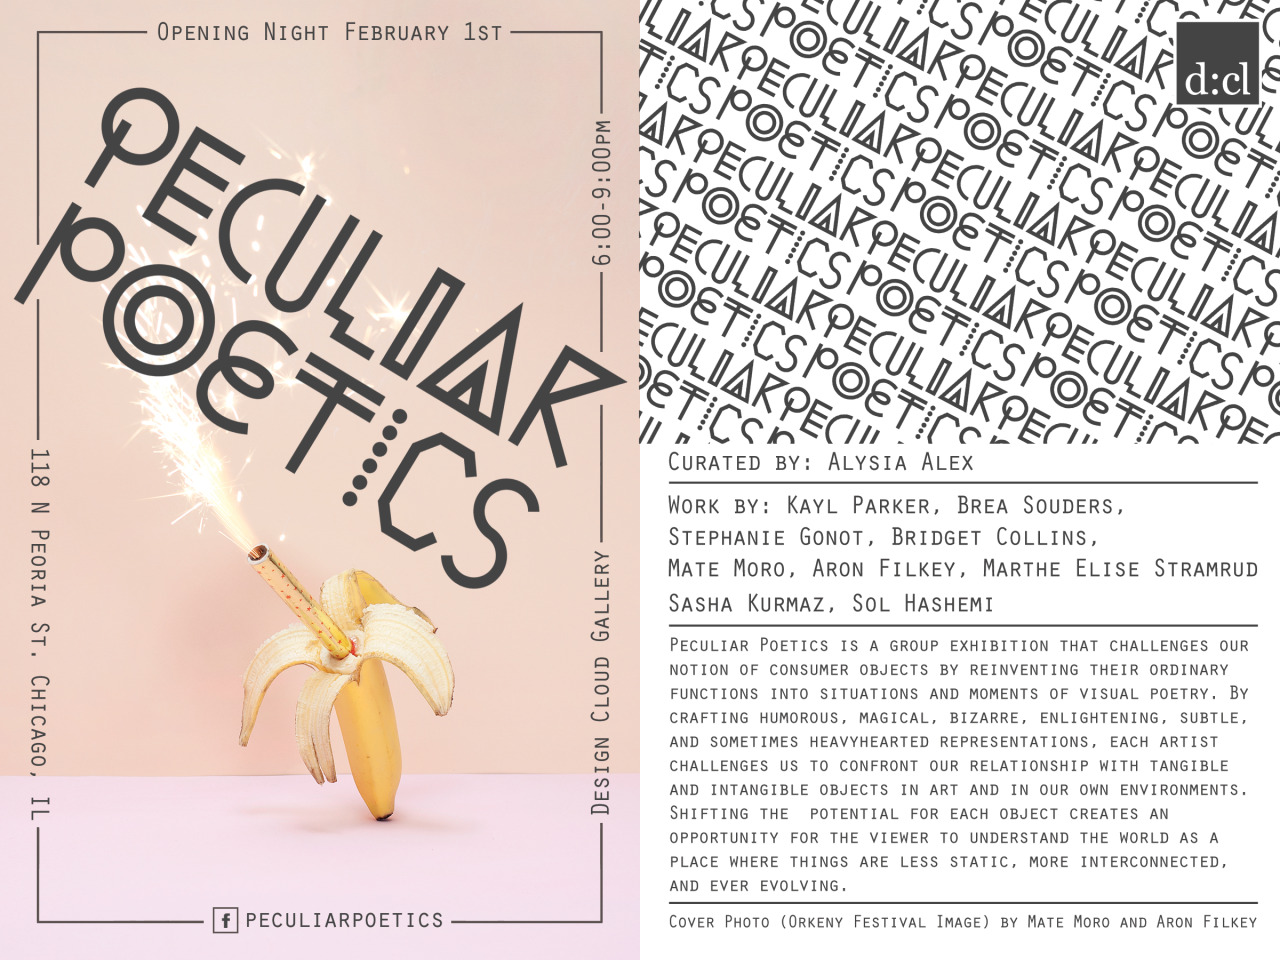 breasouders:   Peculiar Poetics, opening February 1st - February 23rd at Design Cloud Gallery, 118 N. Peoria St. 2N, Chicago, IL.